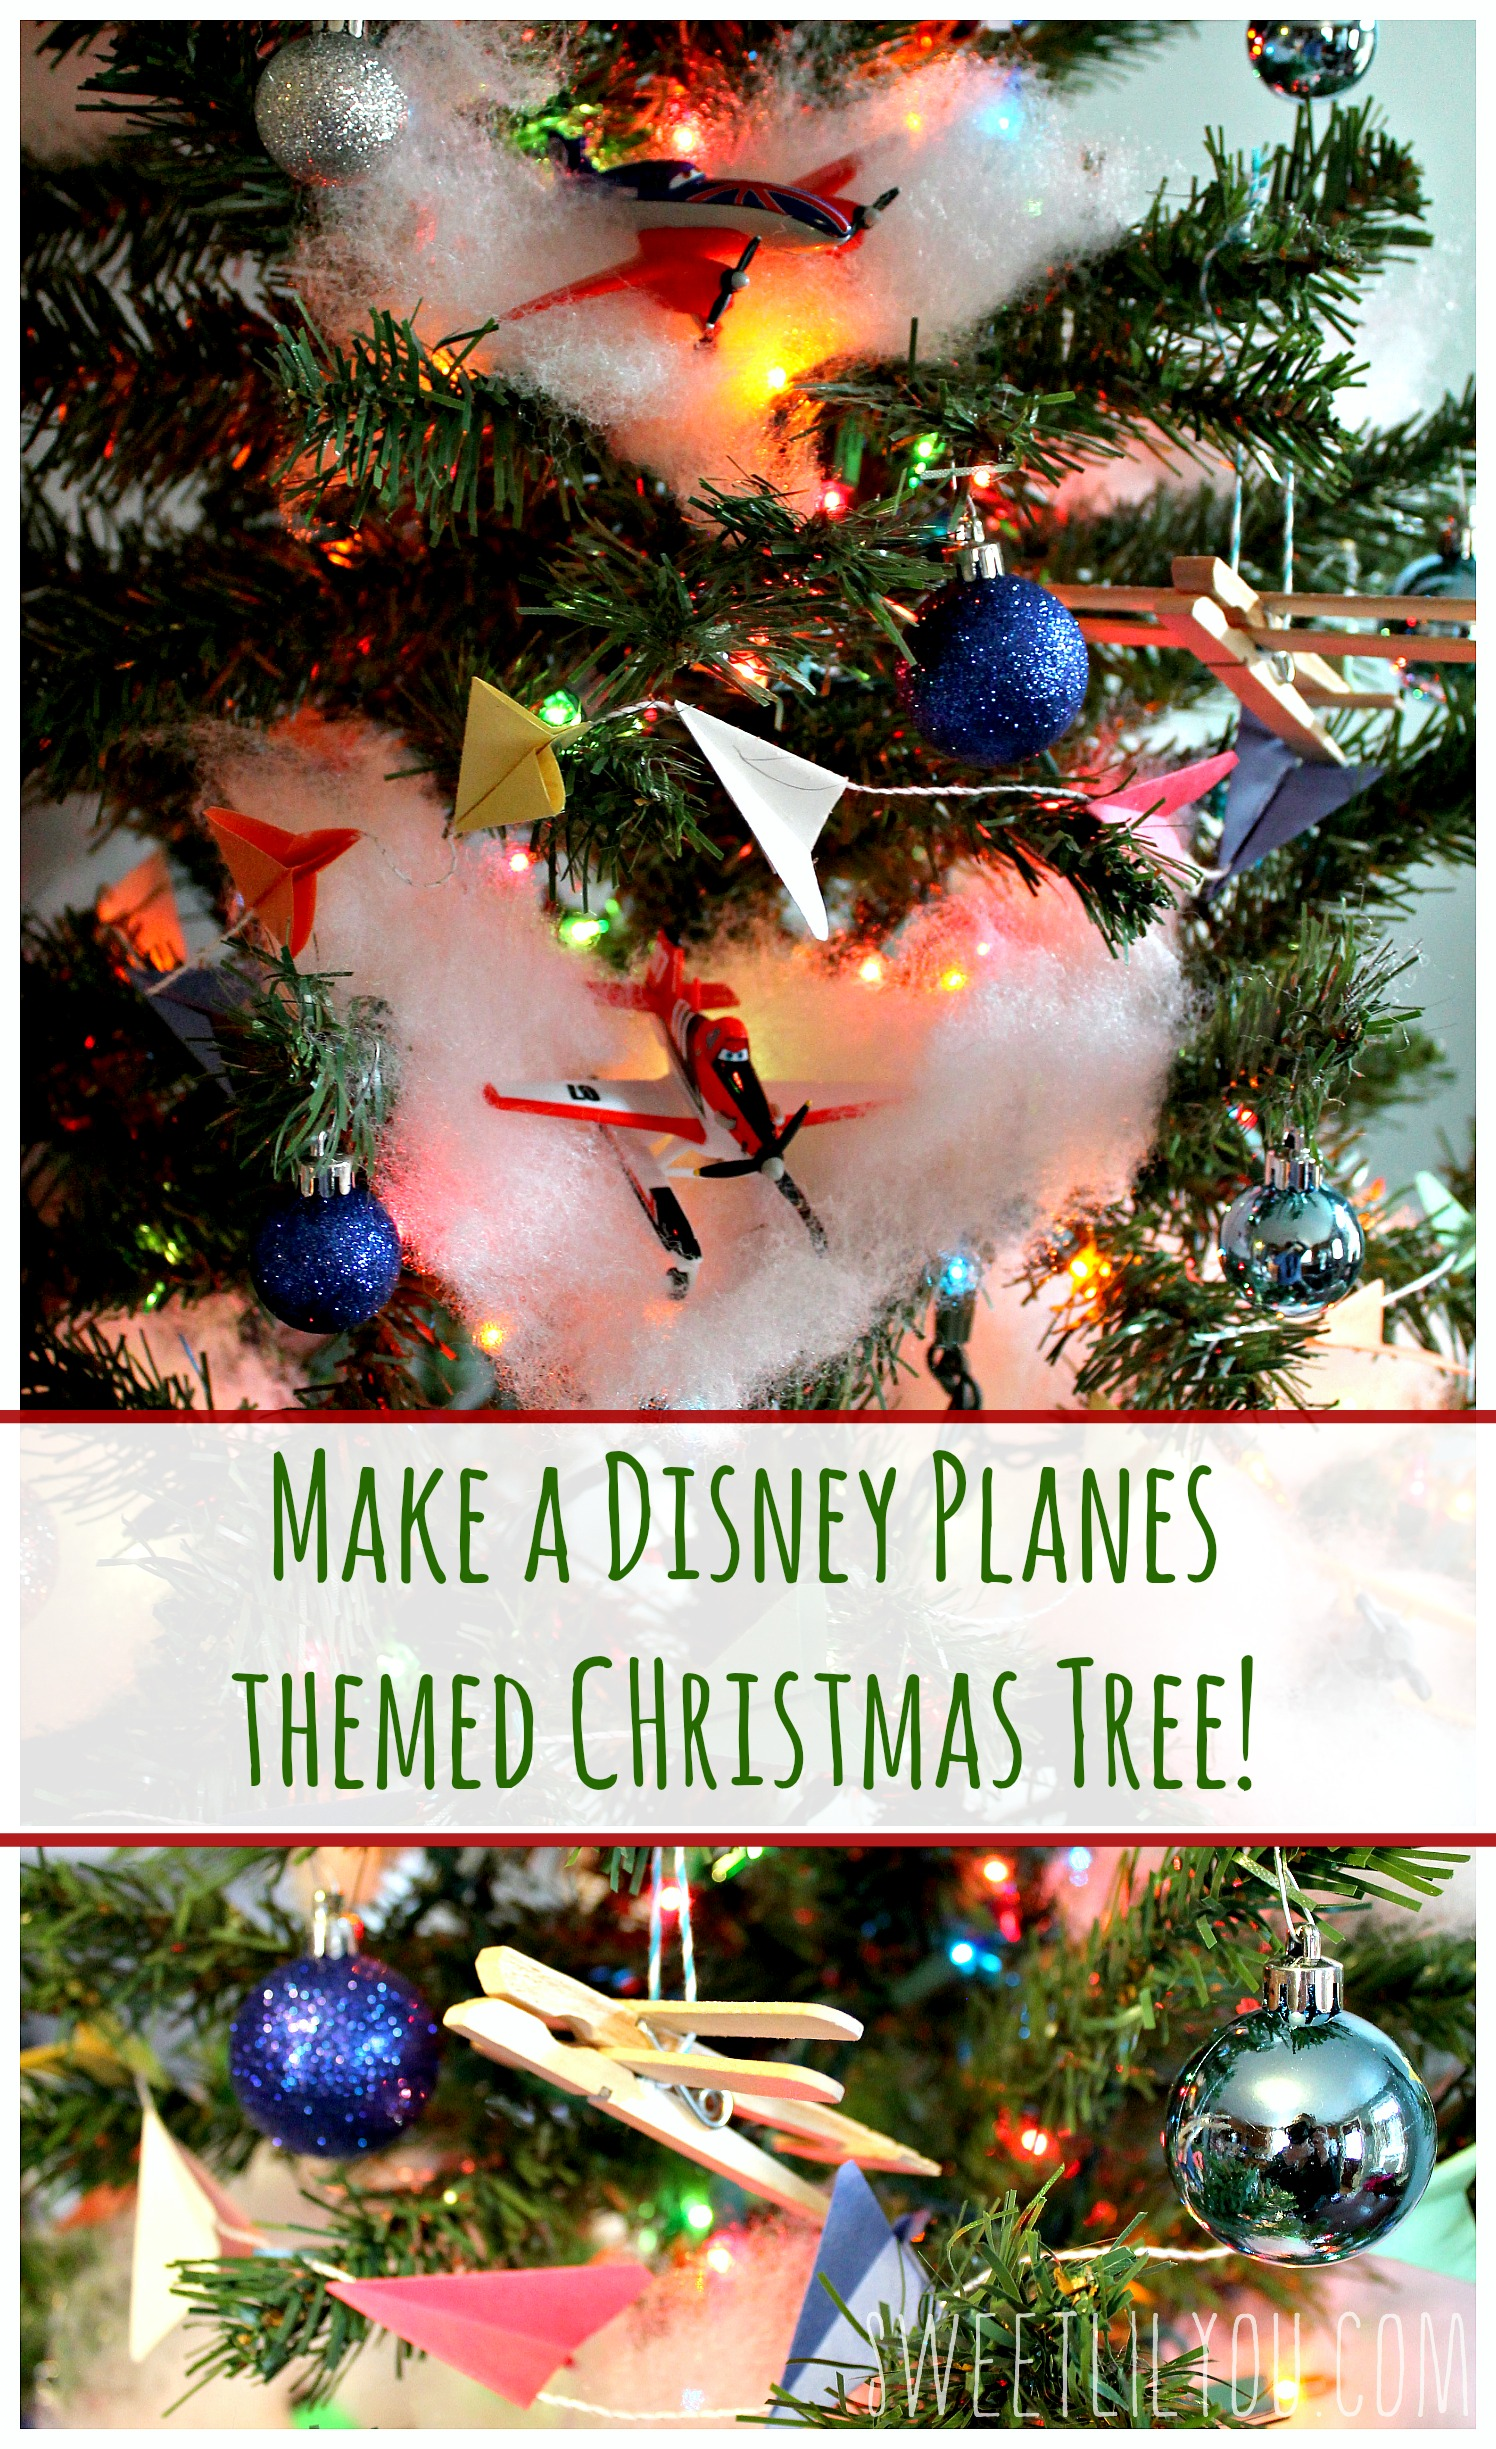 planestotherescue collectivebias diy disney planes themed christmas tree planestotherescue ad